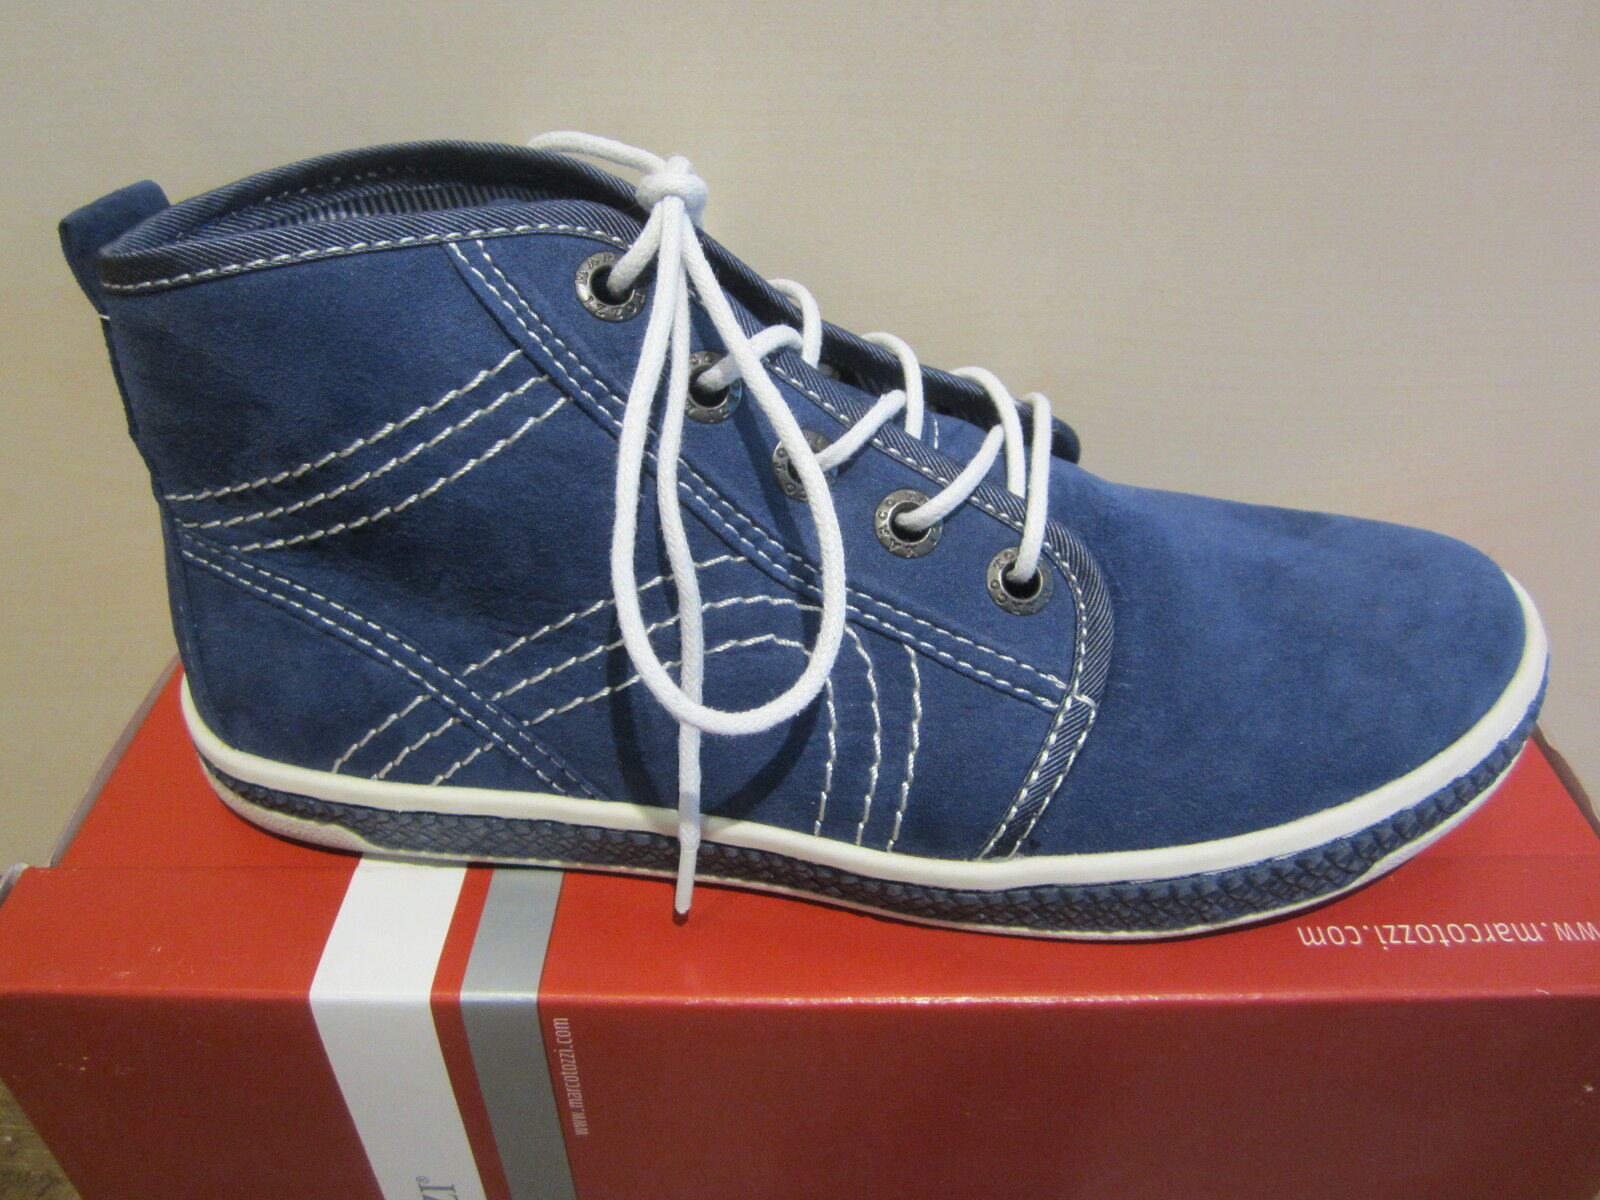 MARCO TOZZI Boots to Lace-Up, bluee Fabric Lining, NEW